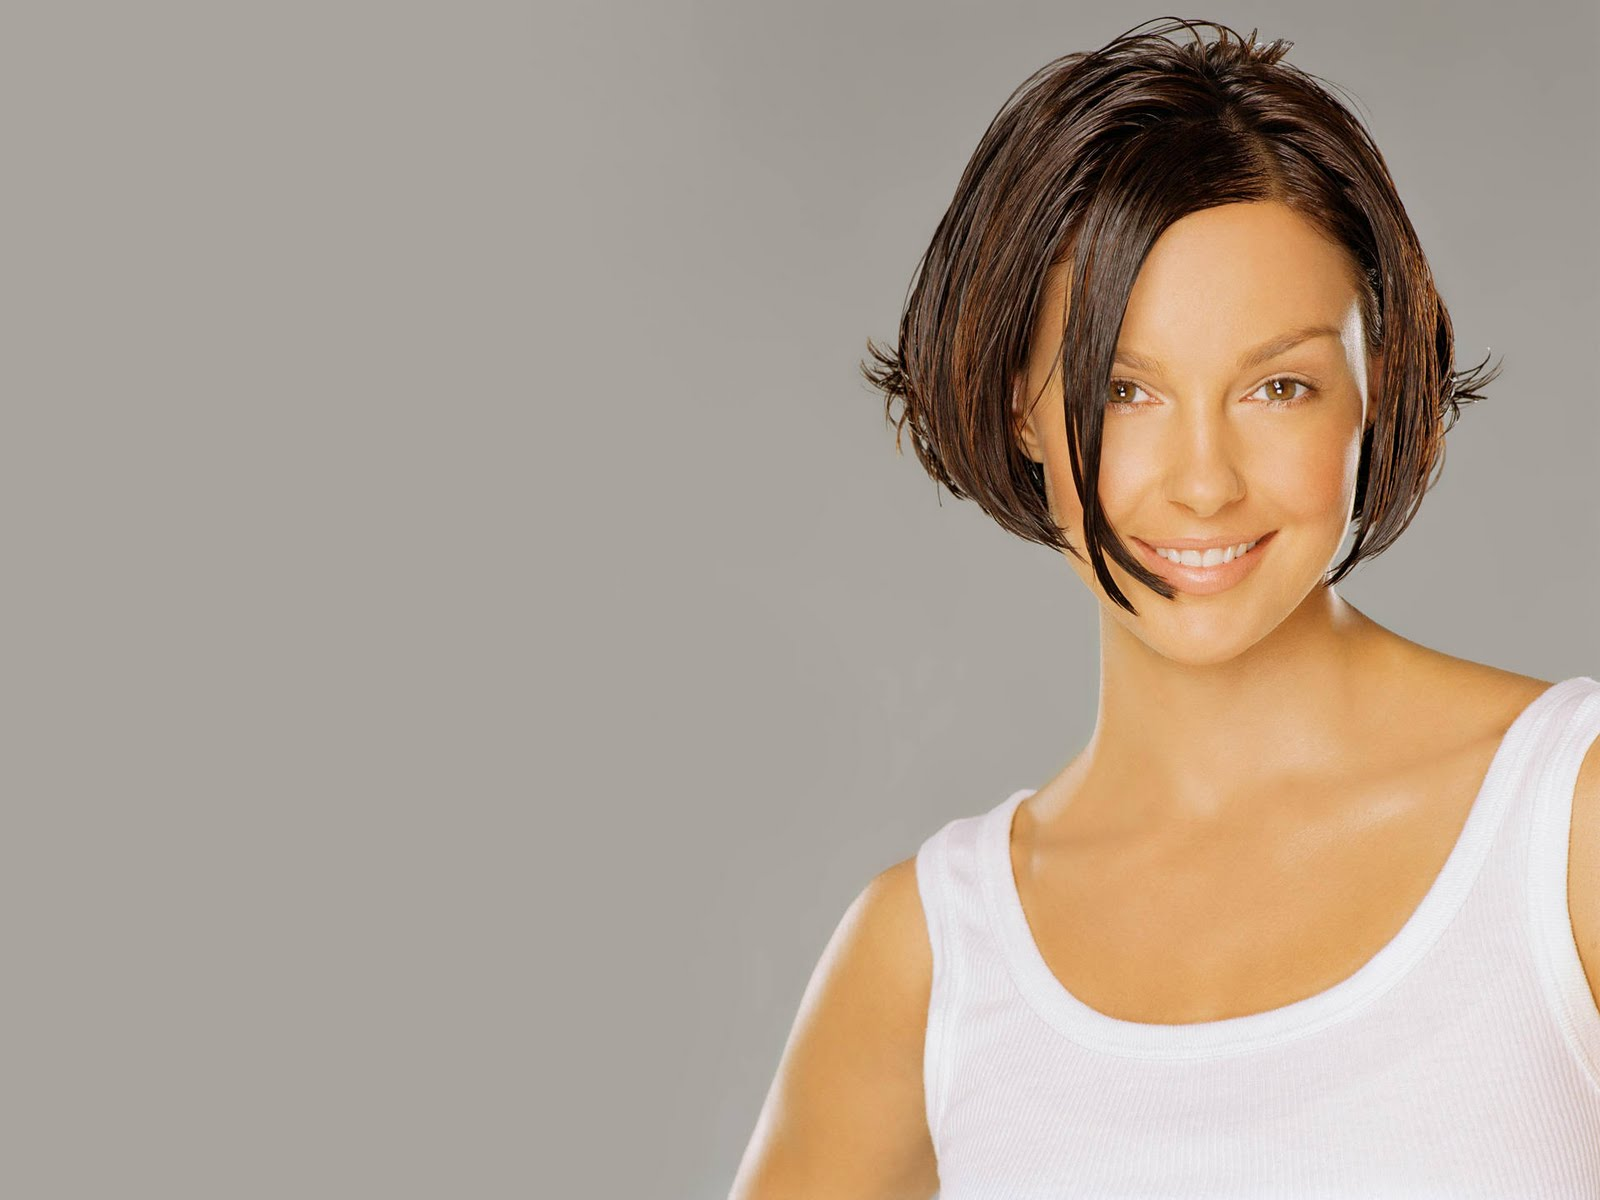 http://4.bp.blogspot.com/-s2Nc6O-ZiD4/TbXmTmTqcVI/AAAAAAAAN6o/SjqBuqoMVuU/s1600/american_TV_and_film_actress_Ashley_Judd_wallpapers%25252B%252525284%25252529.jpg